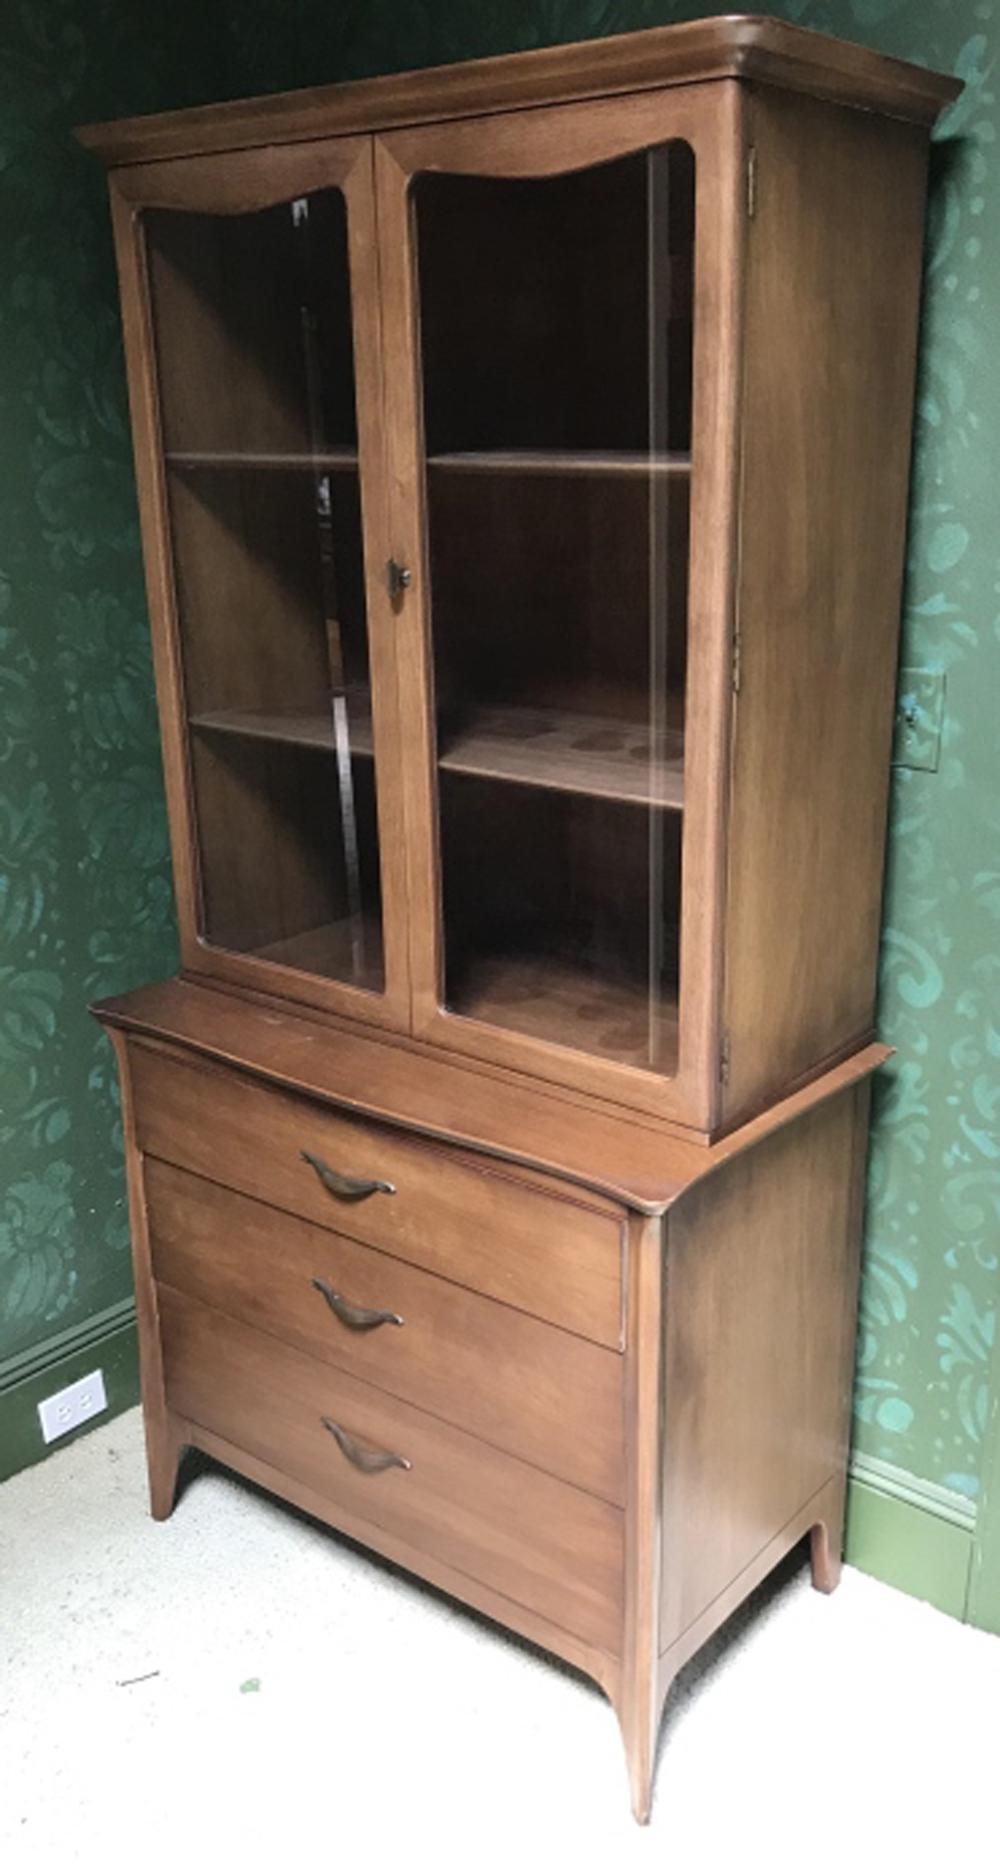 Picture of: Sold Price Mid Century Modern China Cabinet By Drexel Invalid Date Edt